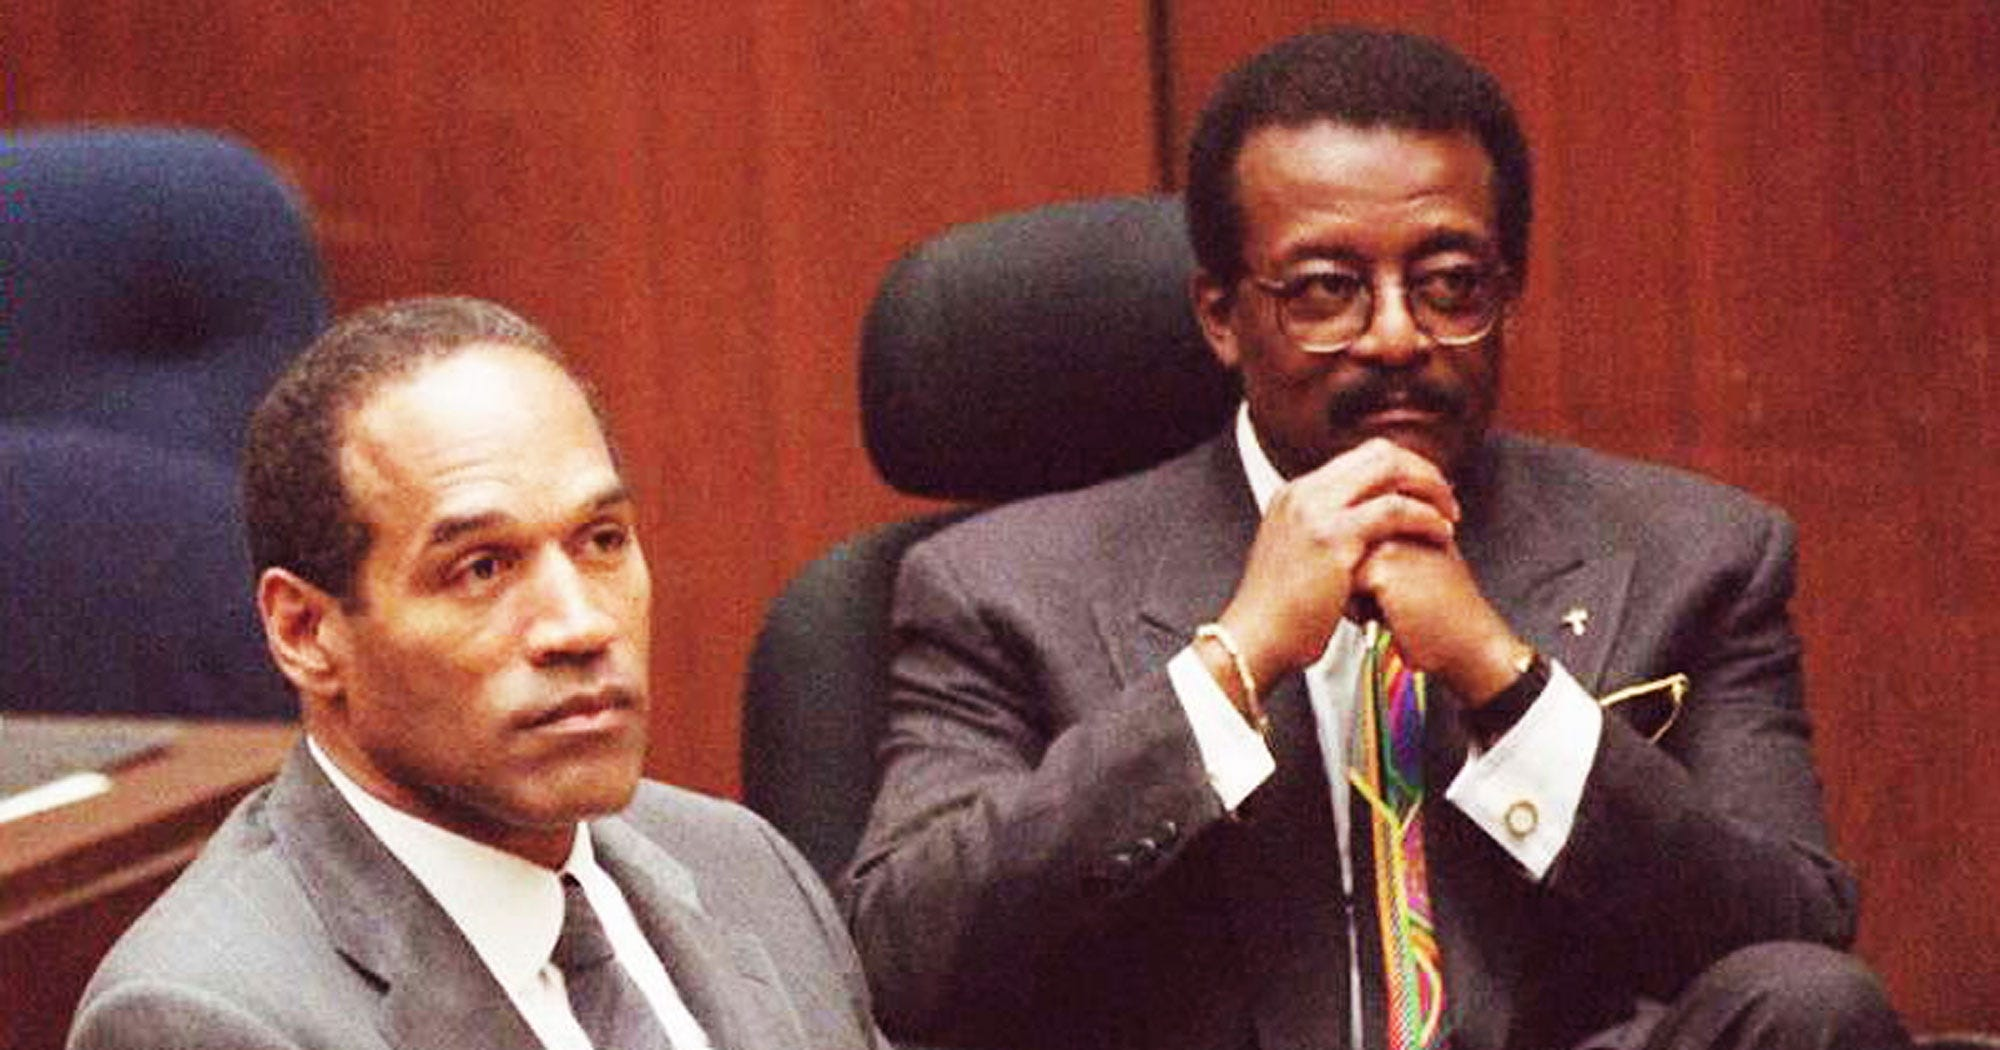 trial of the century o j simpson Before the people v oj simpson debuts on network ten tomorrow, delve back into the details of the biggest criminal trial in modern history a scene from the upcoming telemovie the people v oj simpson.